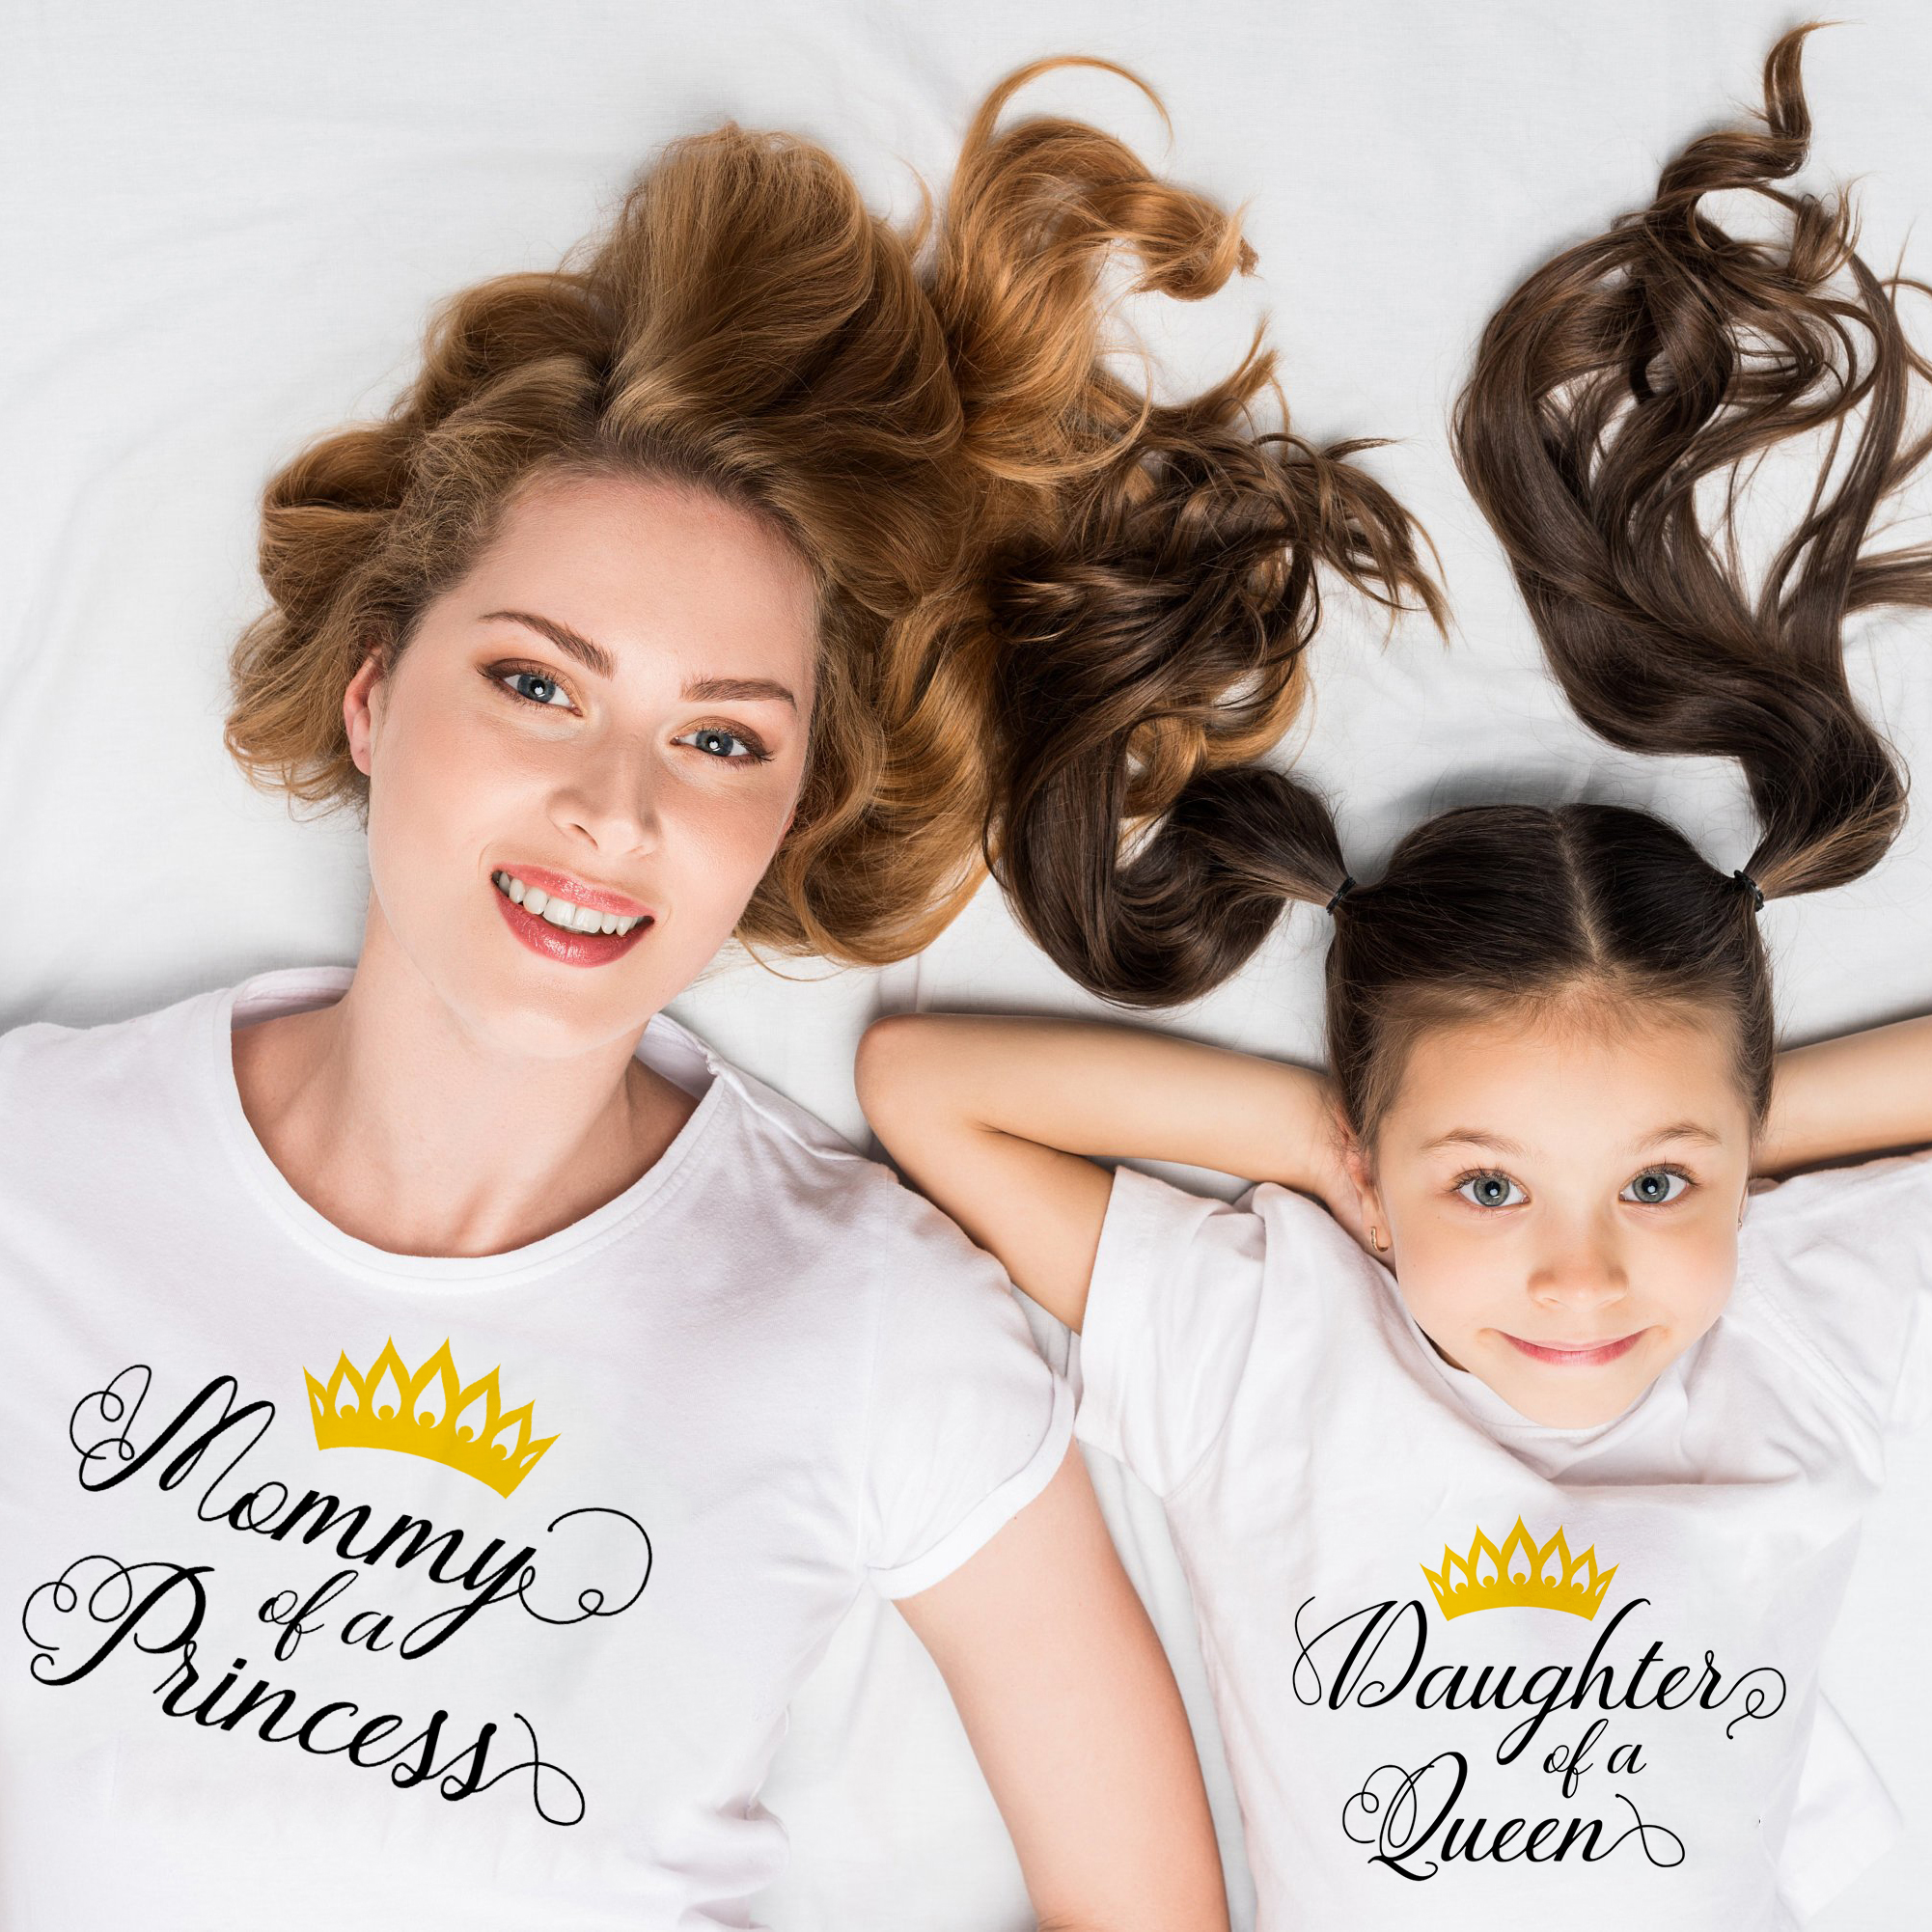 Mother Of A Princess Daughter Of A Queen Mommy & Me T-Shirts Mom And Daughter Or Son Short Sleeve T Shirt Family Matching Shirt